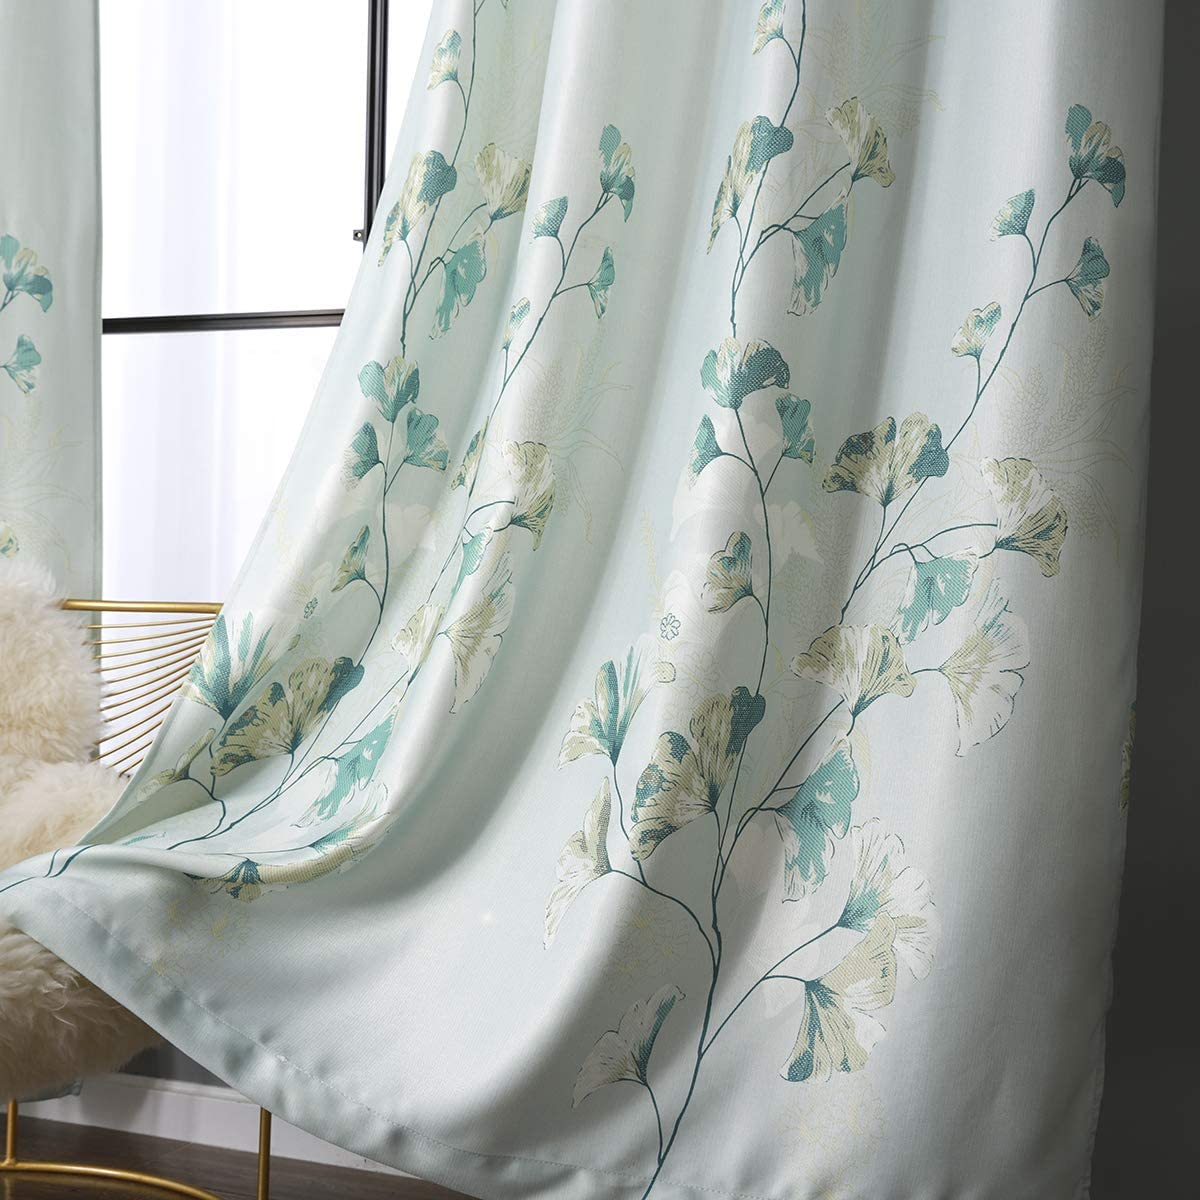 Taisier Home Ginkgo Leaves shopping Floral Curtains - Excellence Bedroom for Thermal